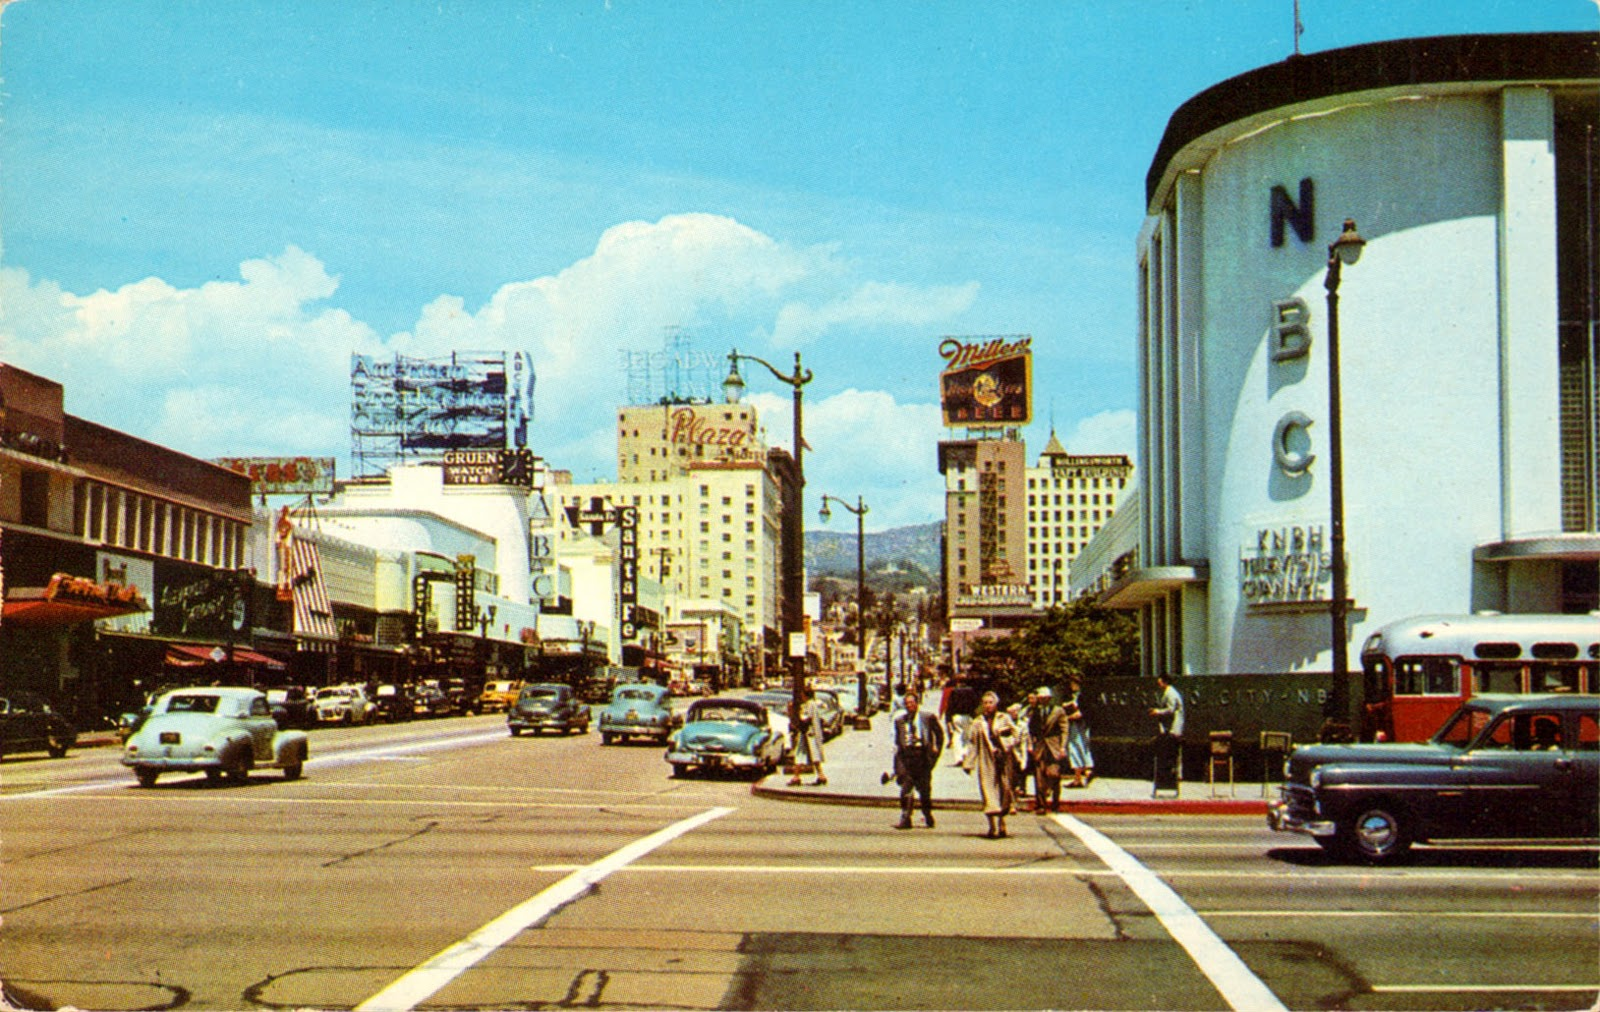 Transpress Nz Los Angeles Then And Now